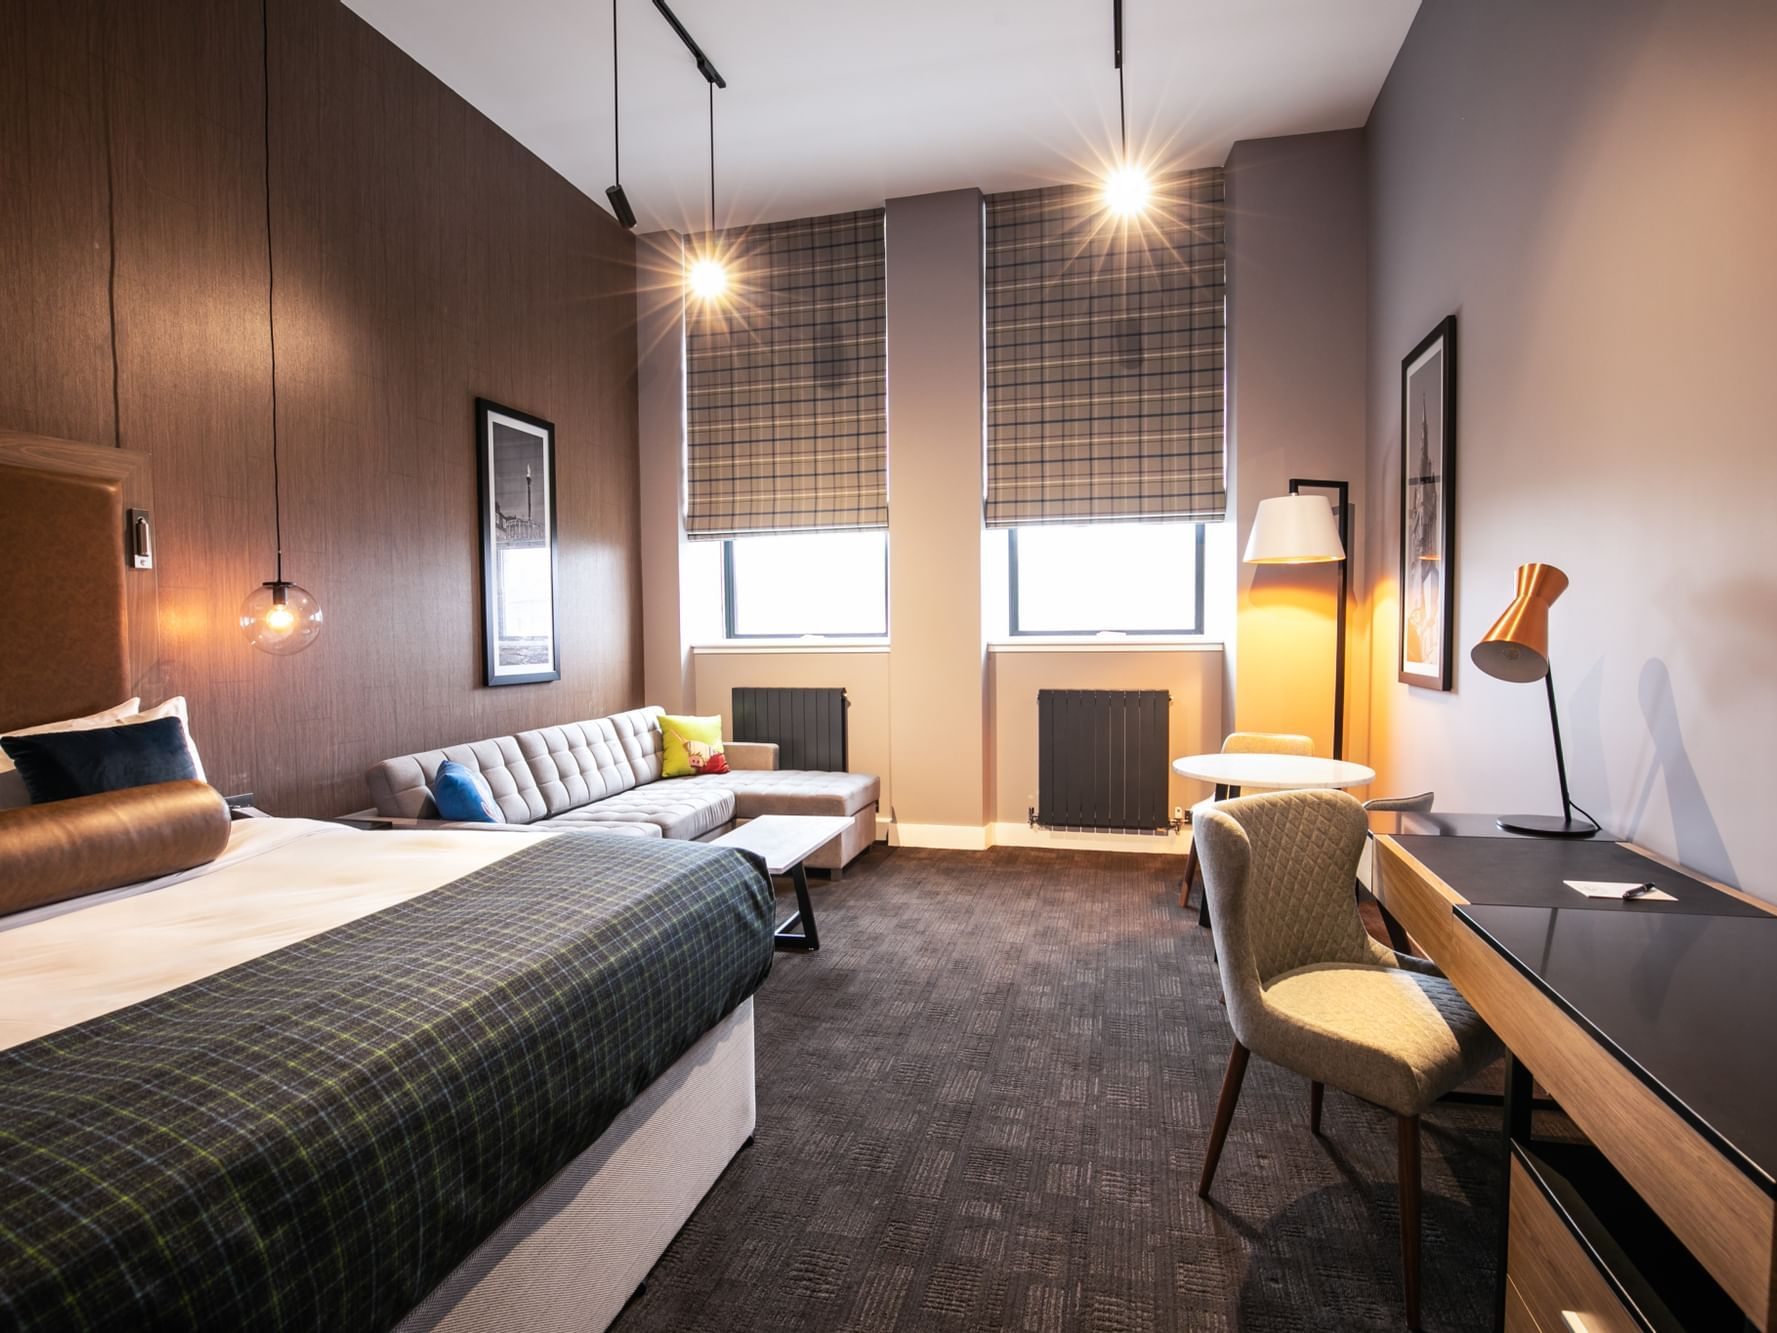 The Corporate King Room at Sandman Signature Aberdeen Hotel with one super king bed (luxury glencraft mattress) and a pull-out sofa bed on the side